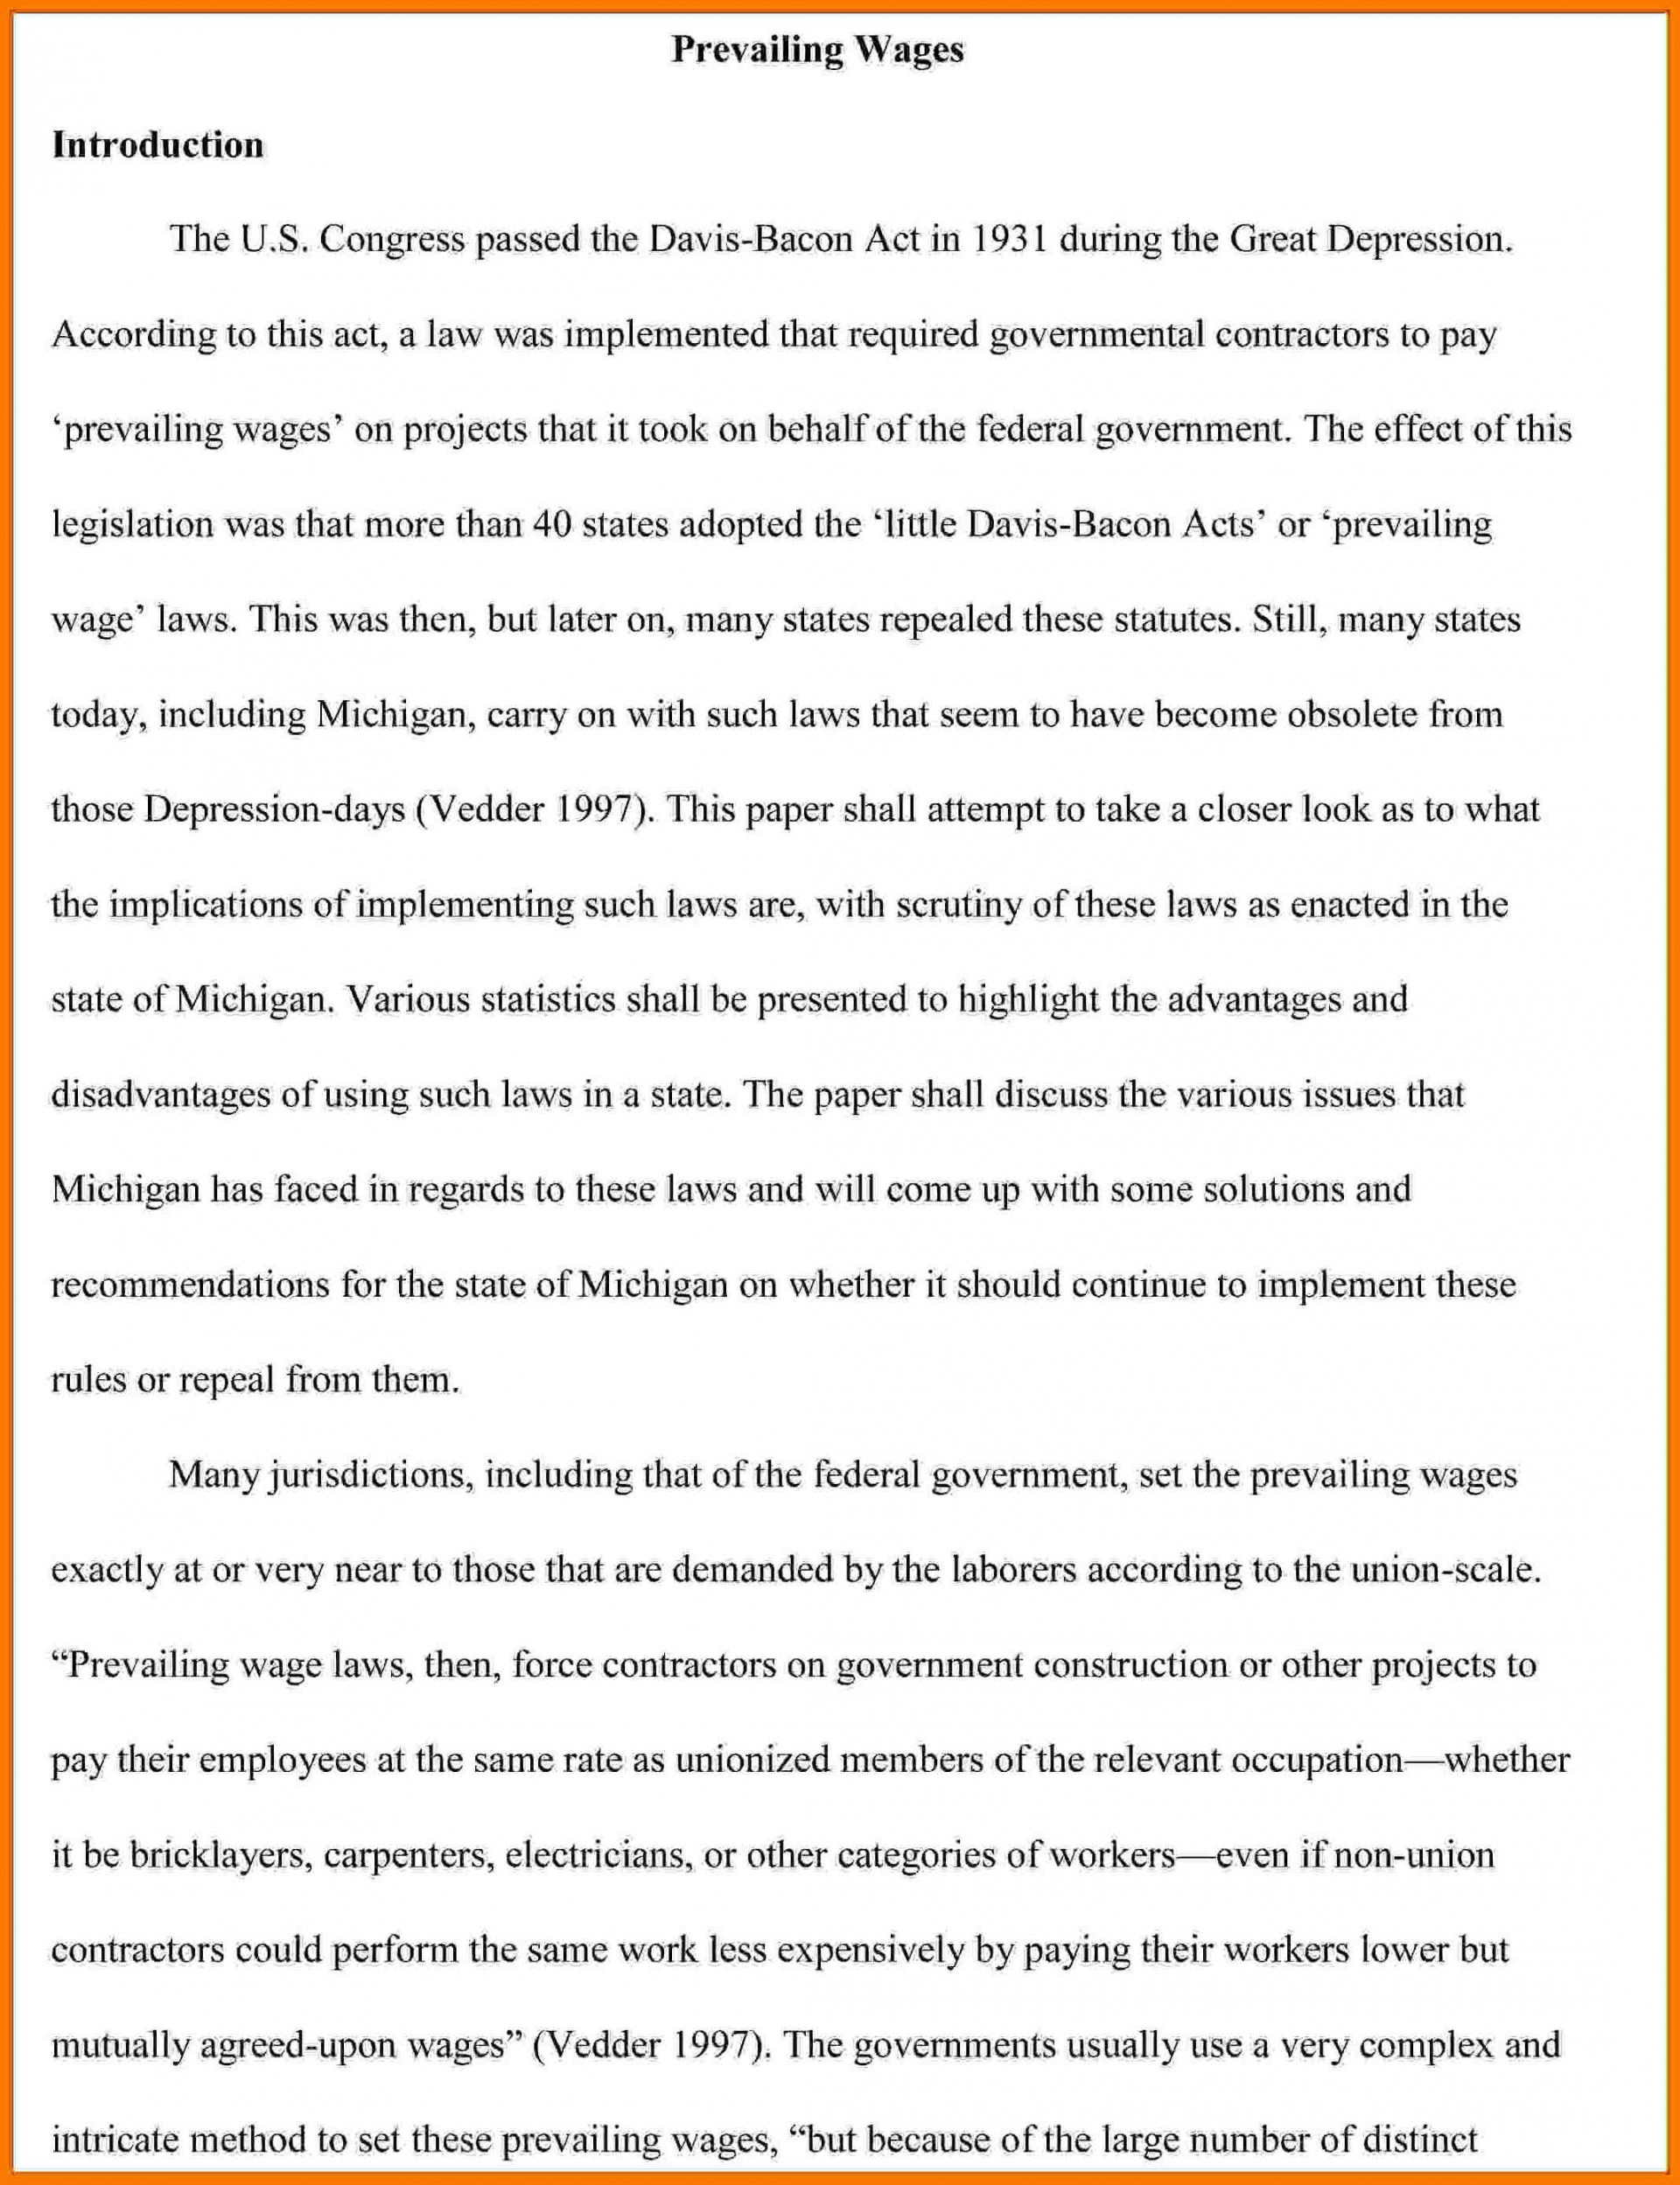 002 Example Of Research Paper Introduction Collection Solutions Apa Wonderful A About Bullying Psychology Scientific 1920